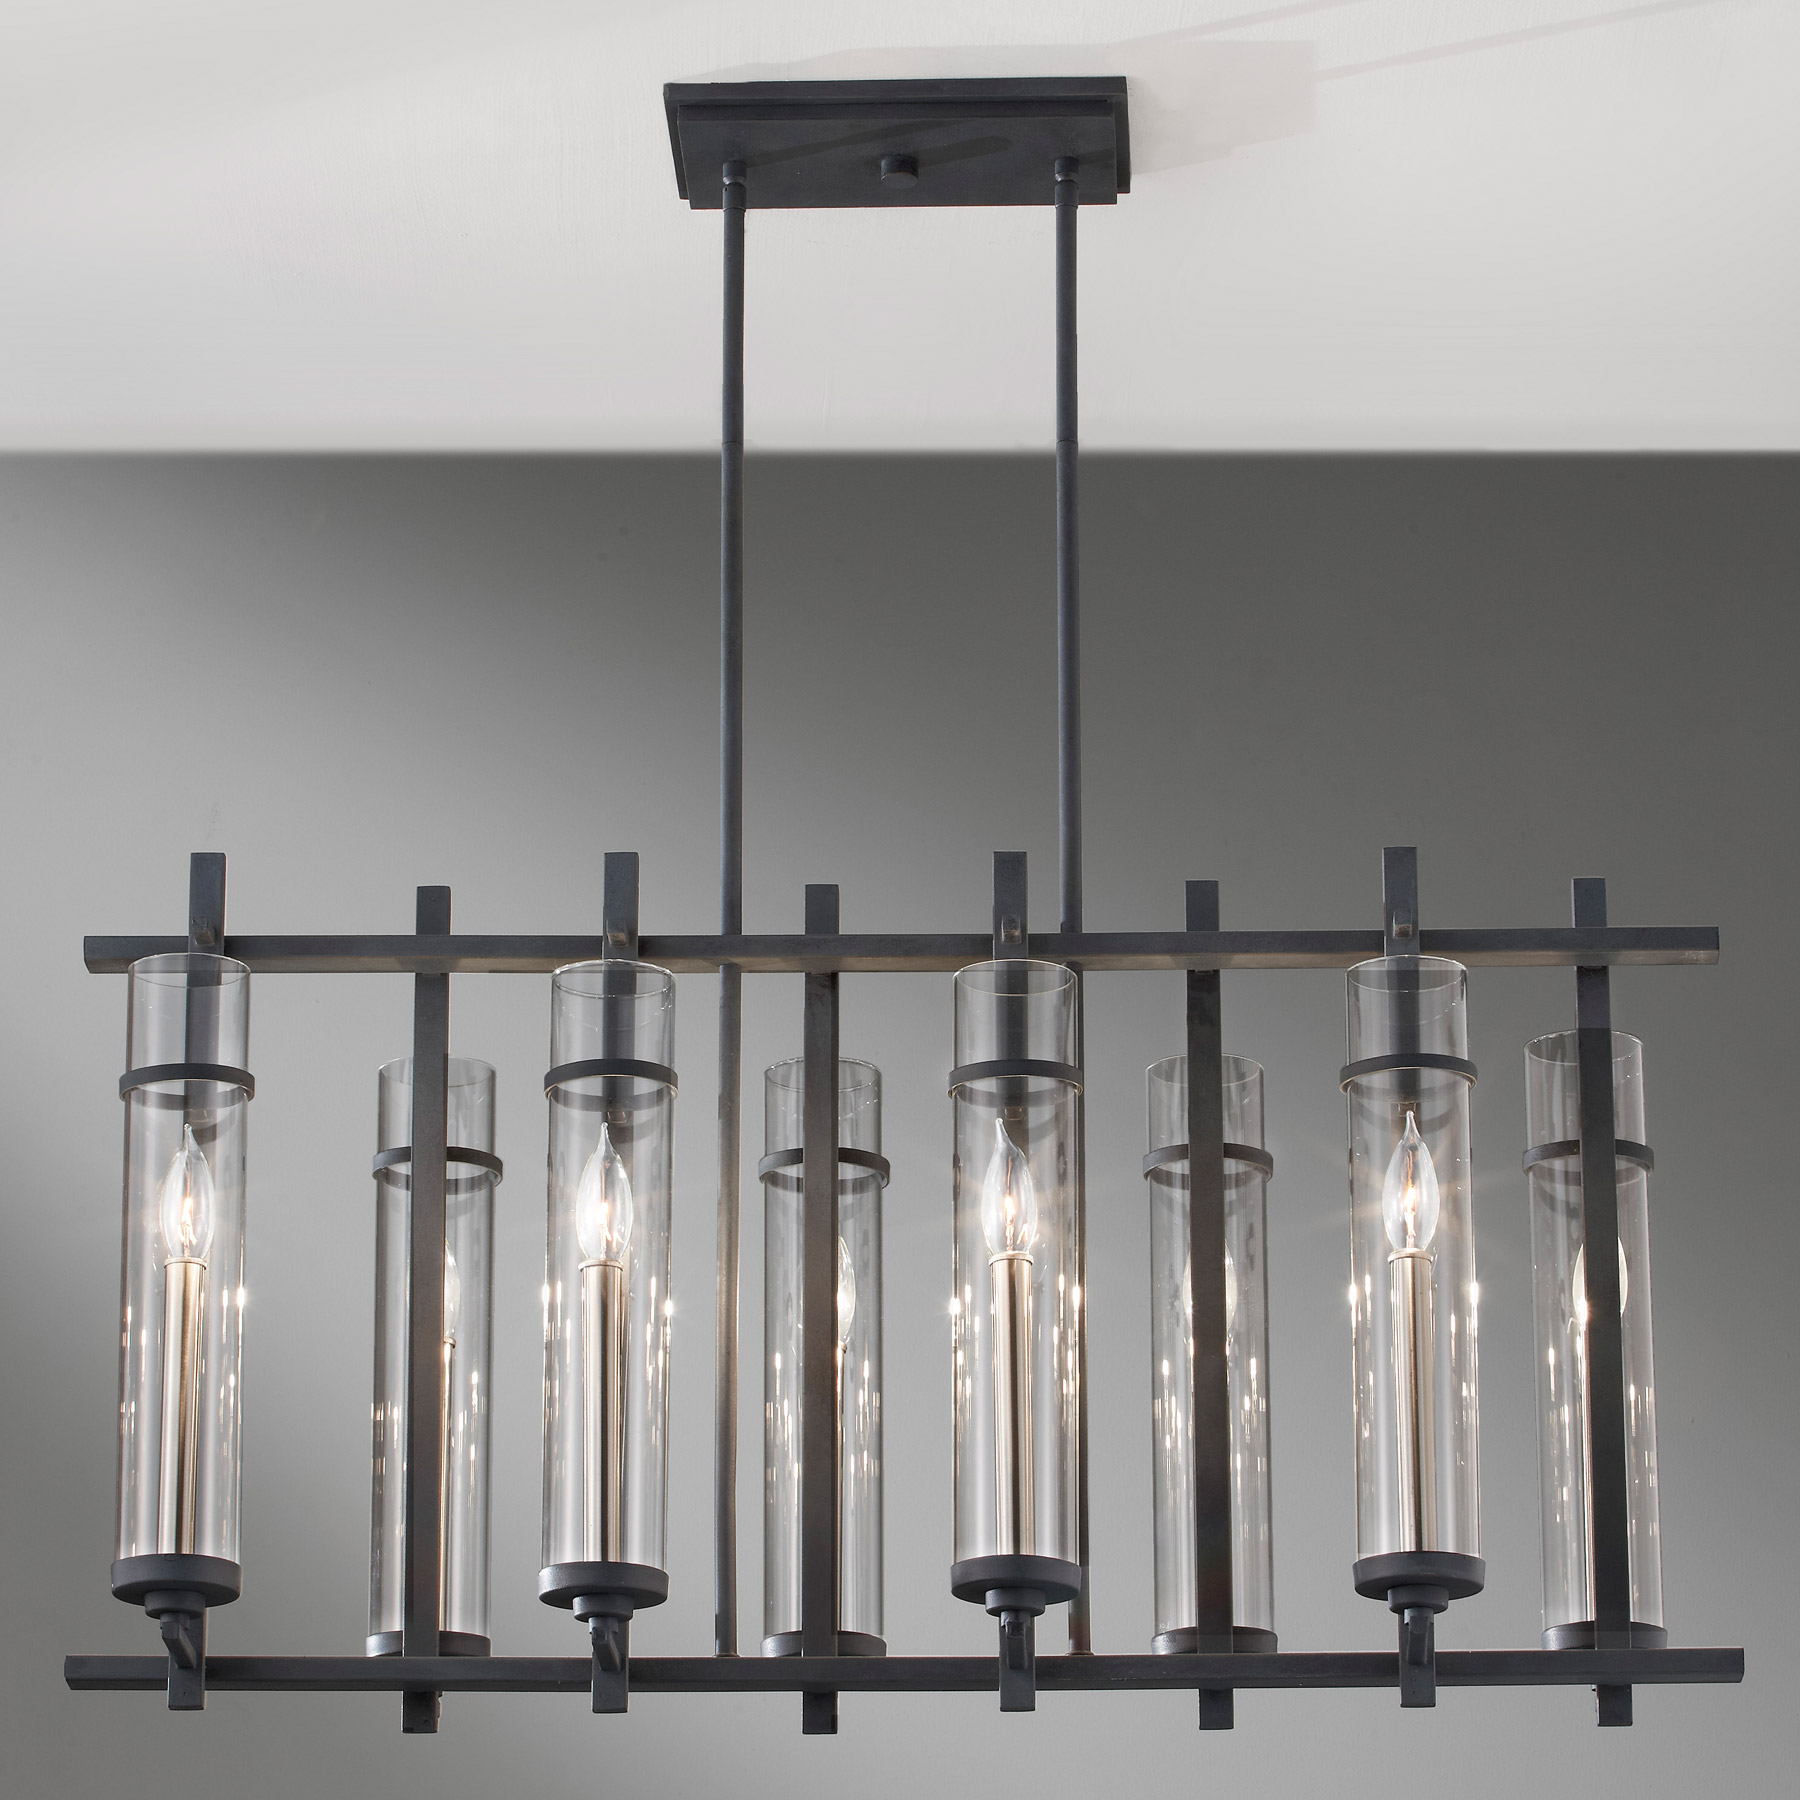 Lamp chandelier wonderful murray feiss lighting for home lighting murray feiss fancy ceiling fans chandelier manufacturers usa arubaitofo Image collections